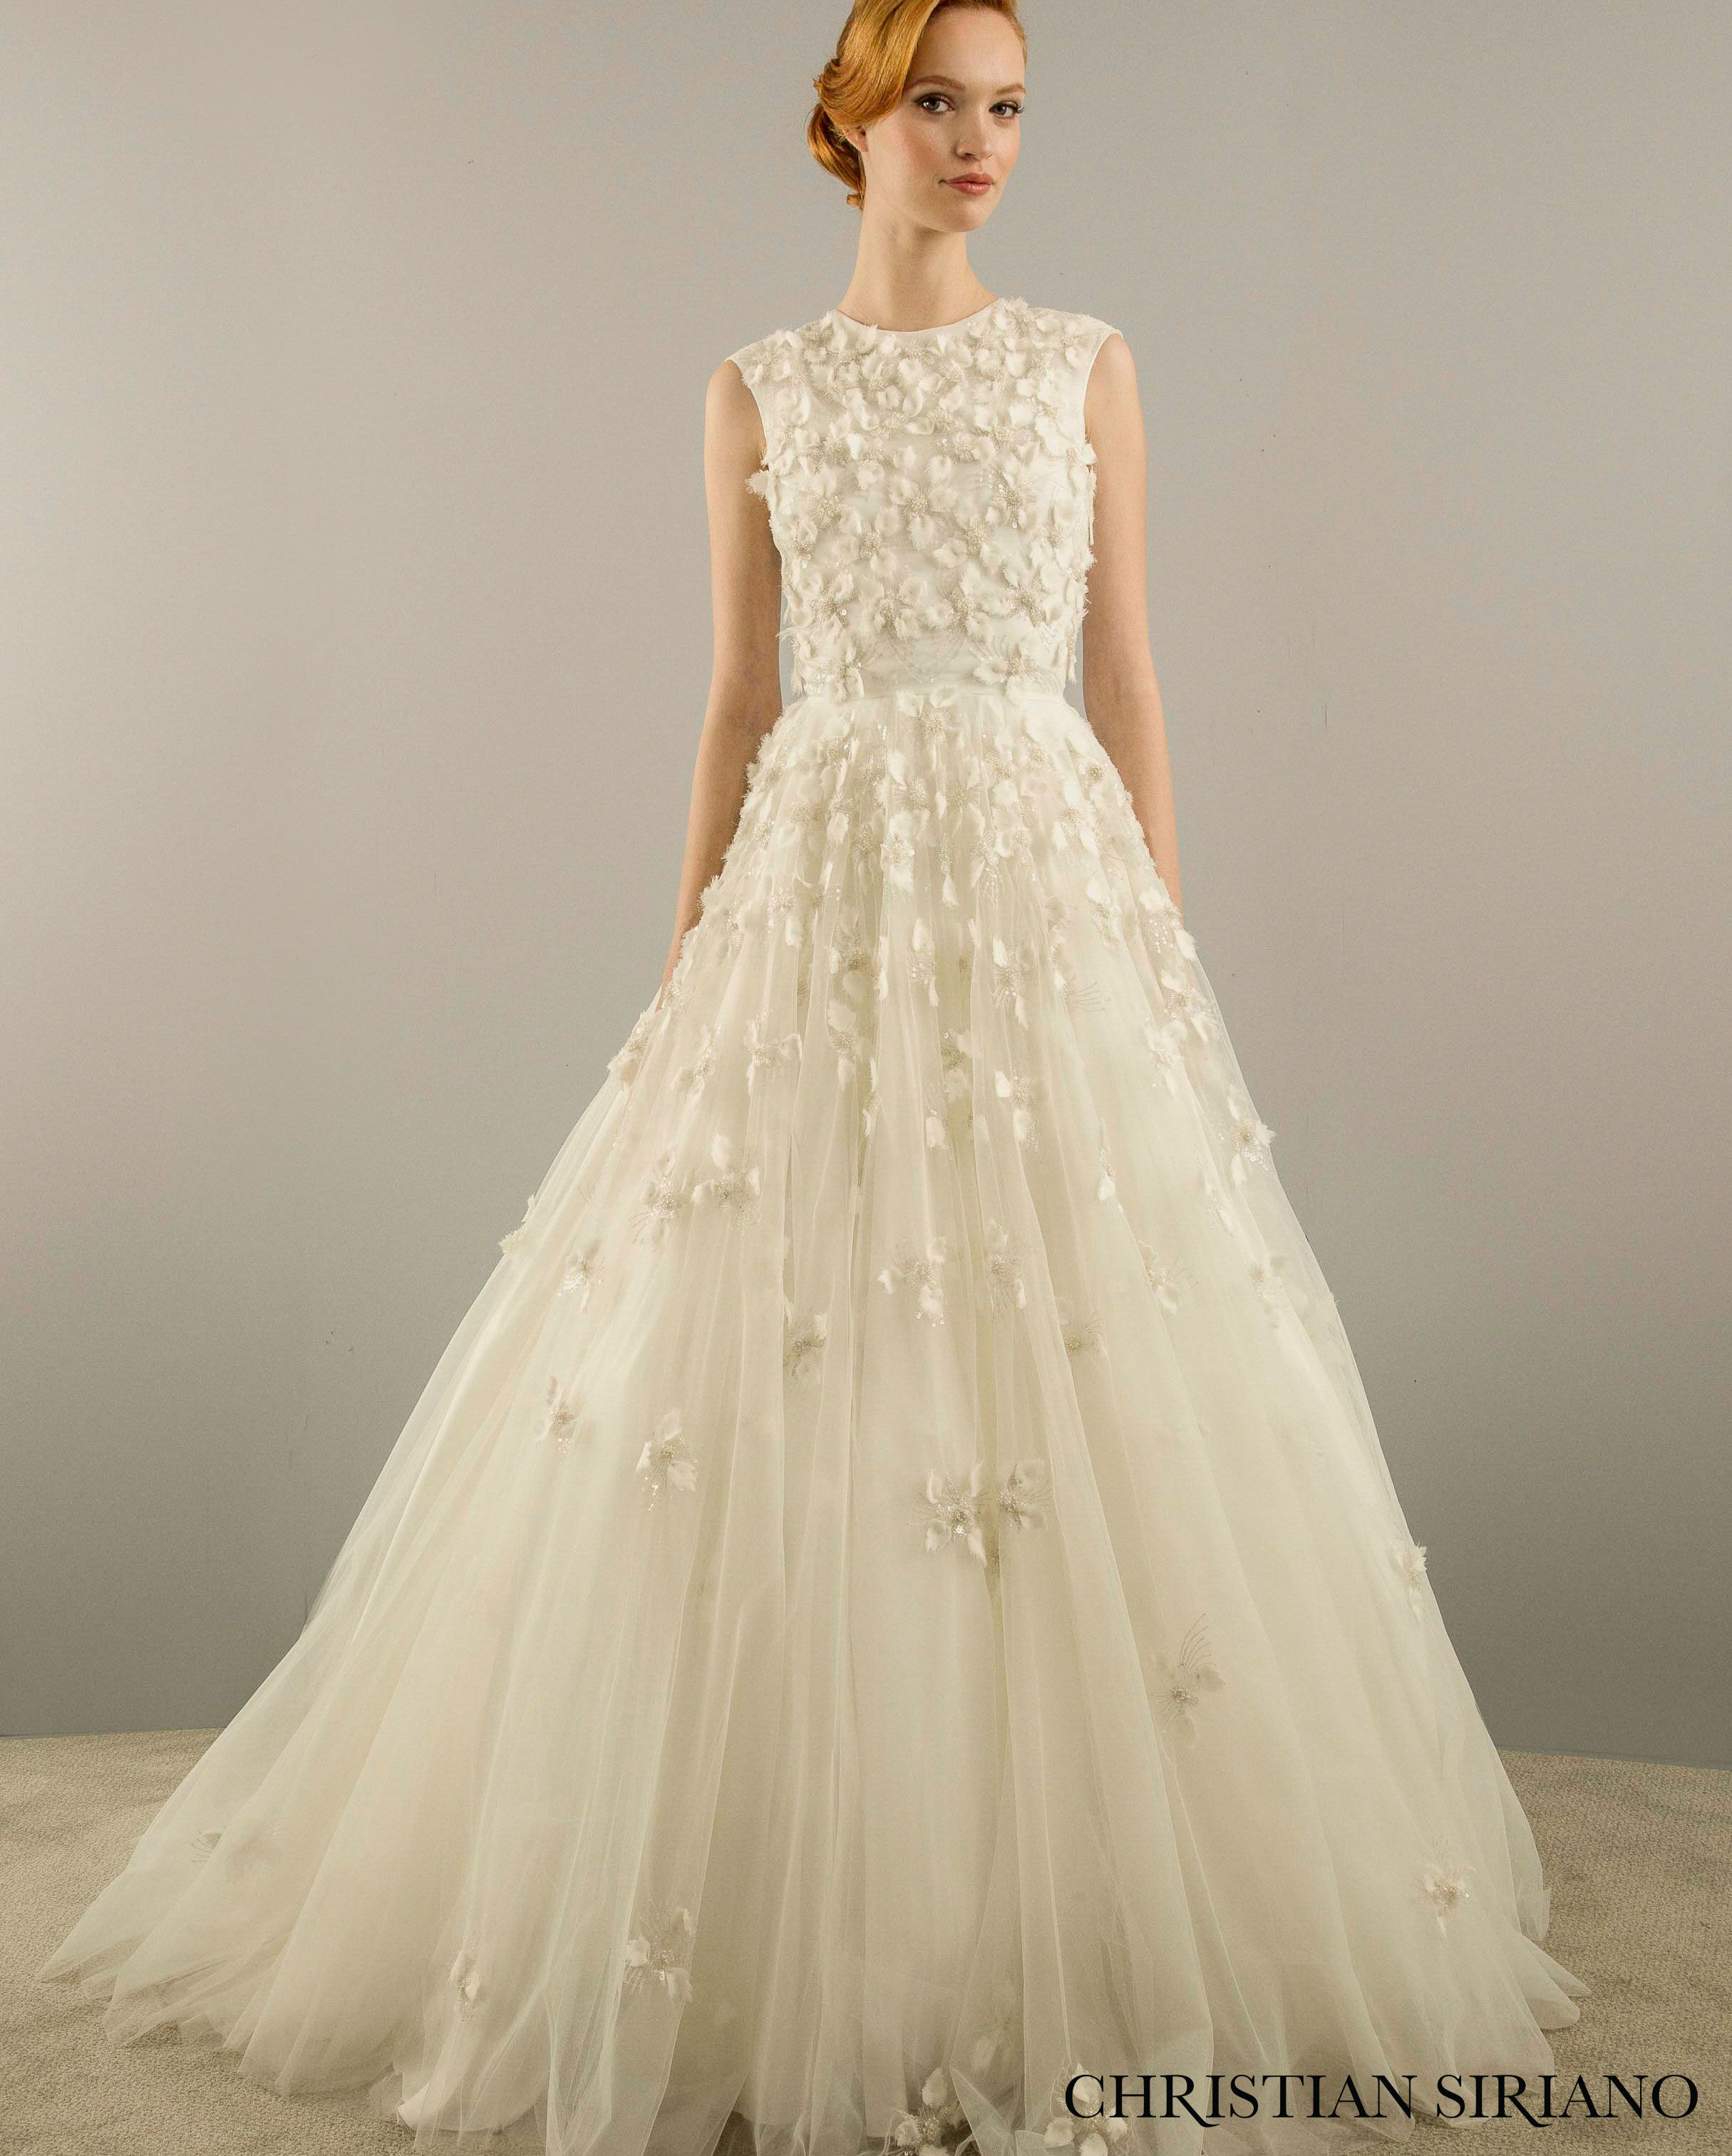 First look christian sirianos new bridal collection for christian siriano wedding dress at kleinfeld ombrellifo Image collections